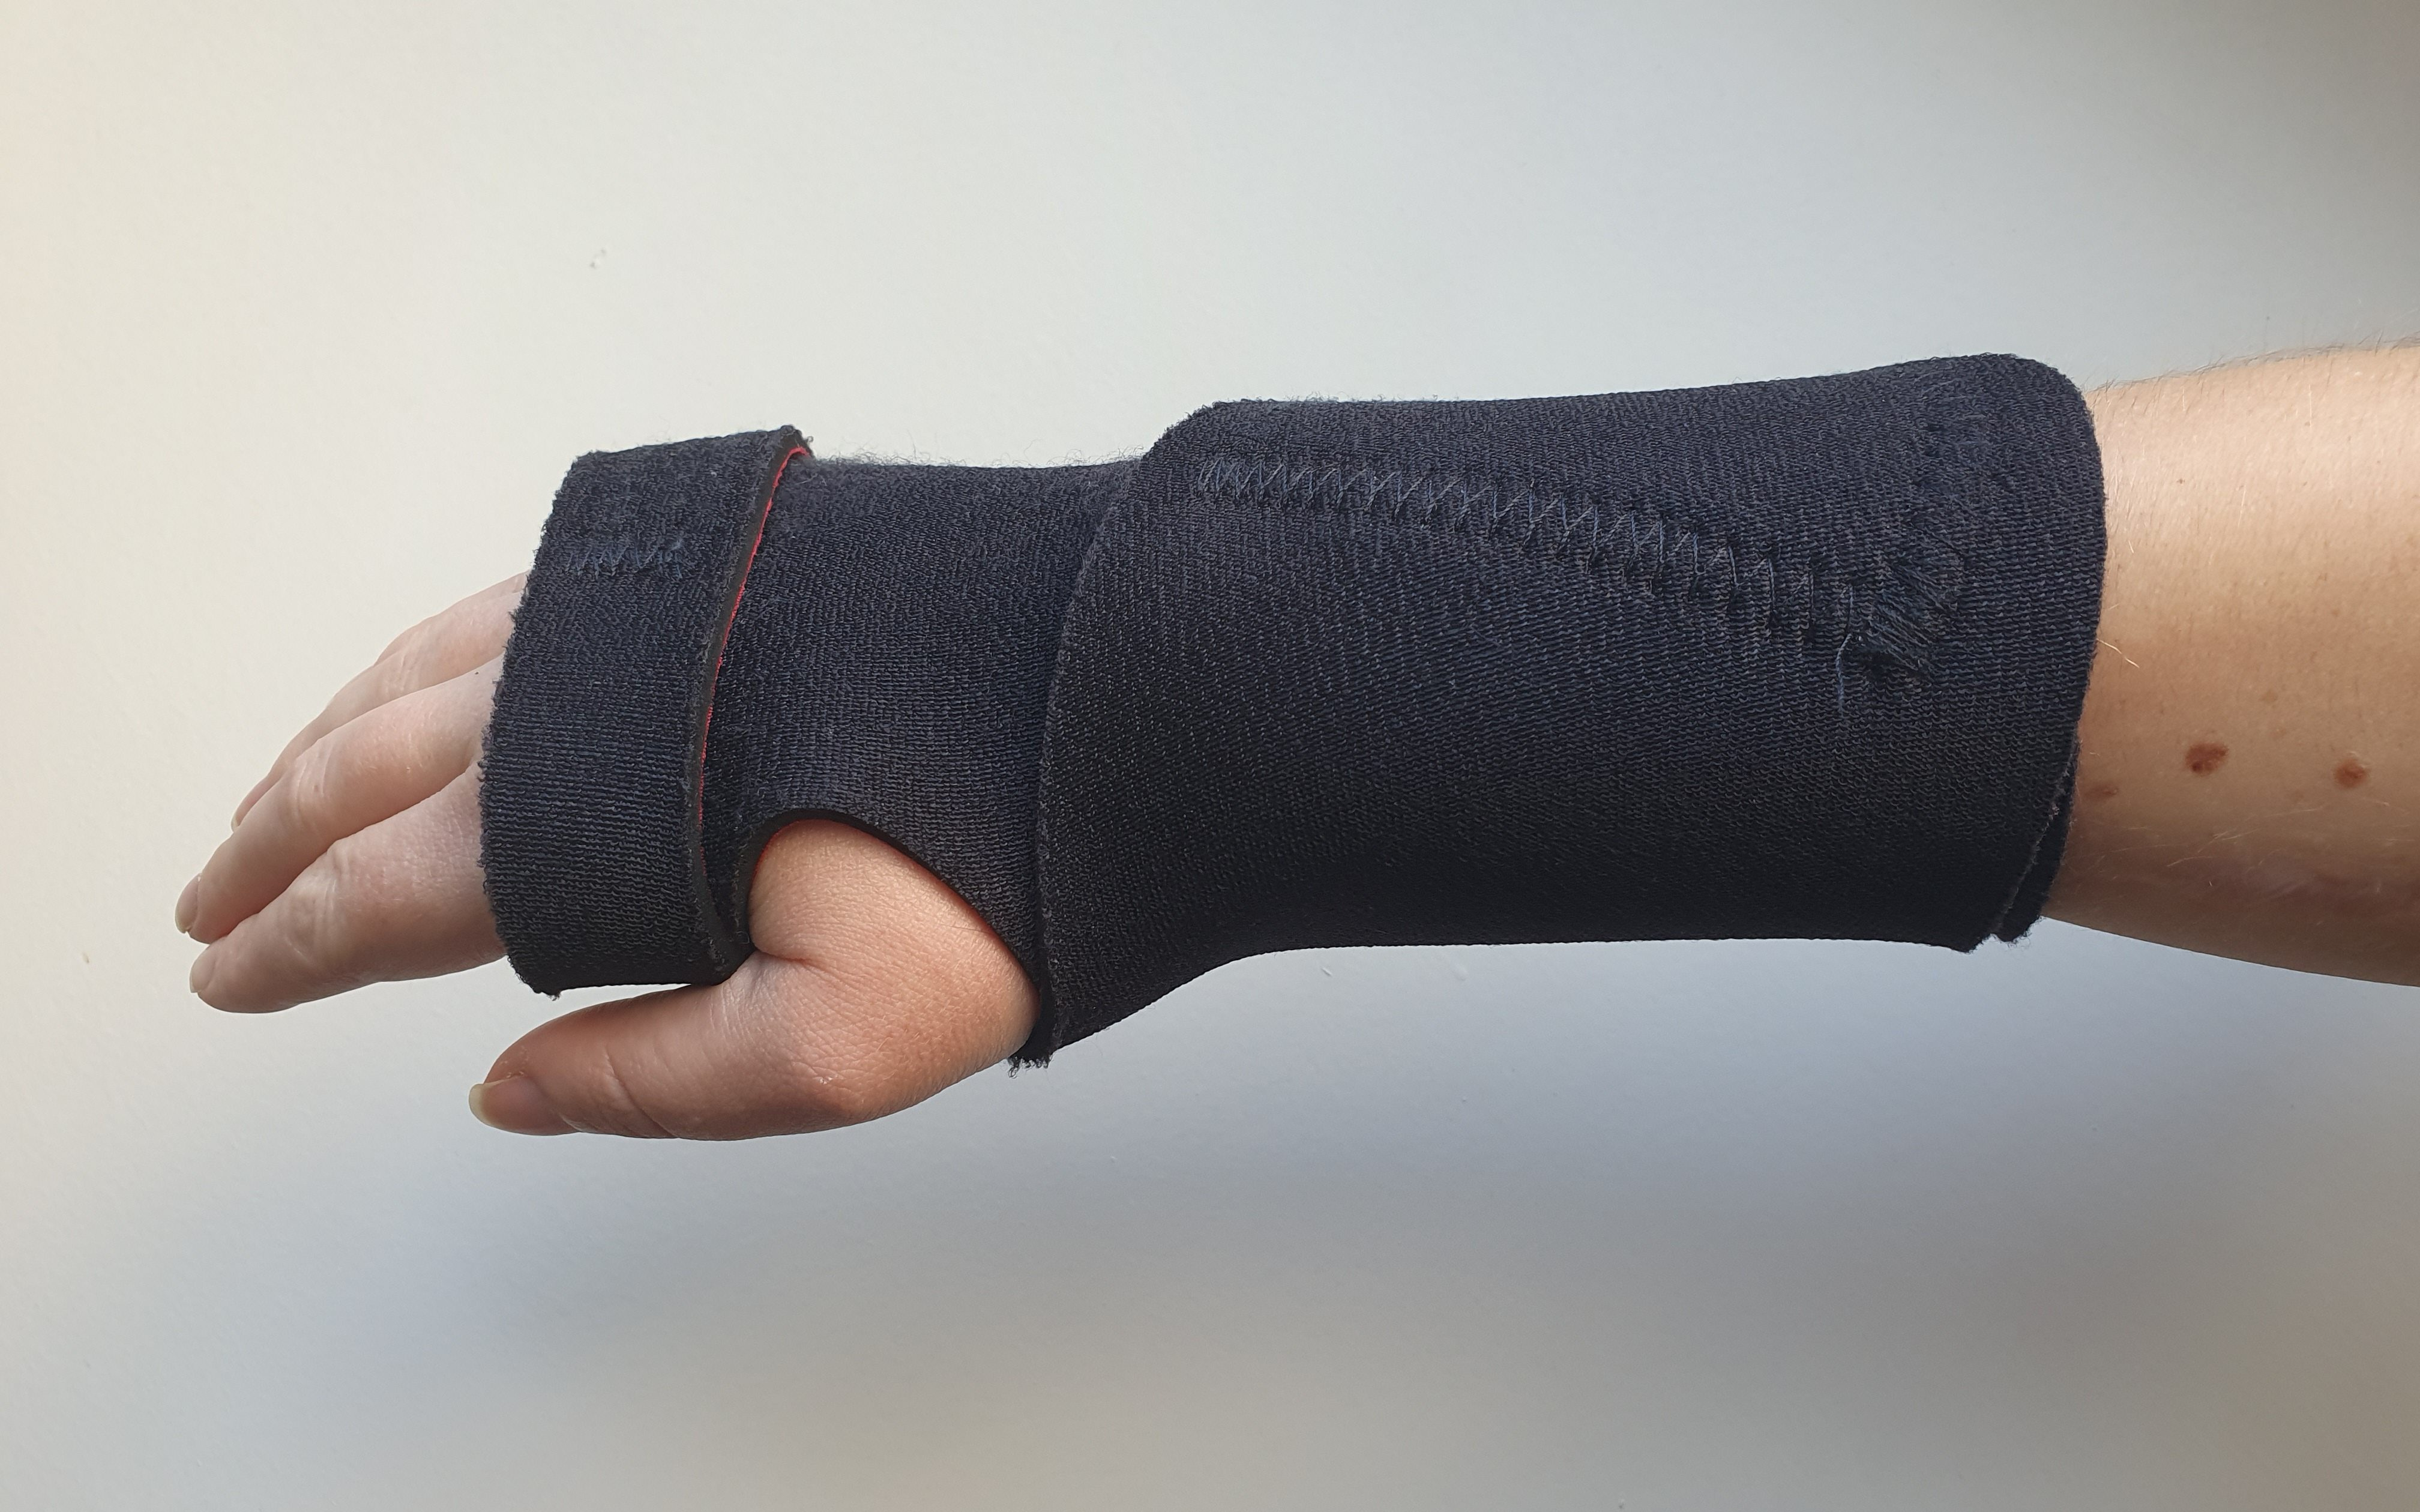 Neoprene wrist splint secured across the back of the hand and wrist by velcro straps